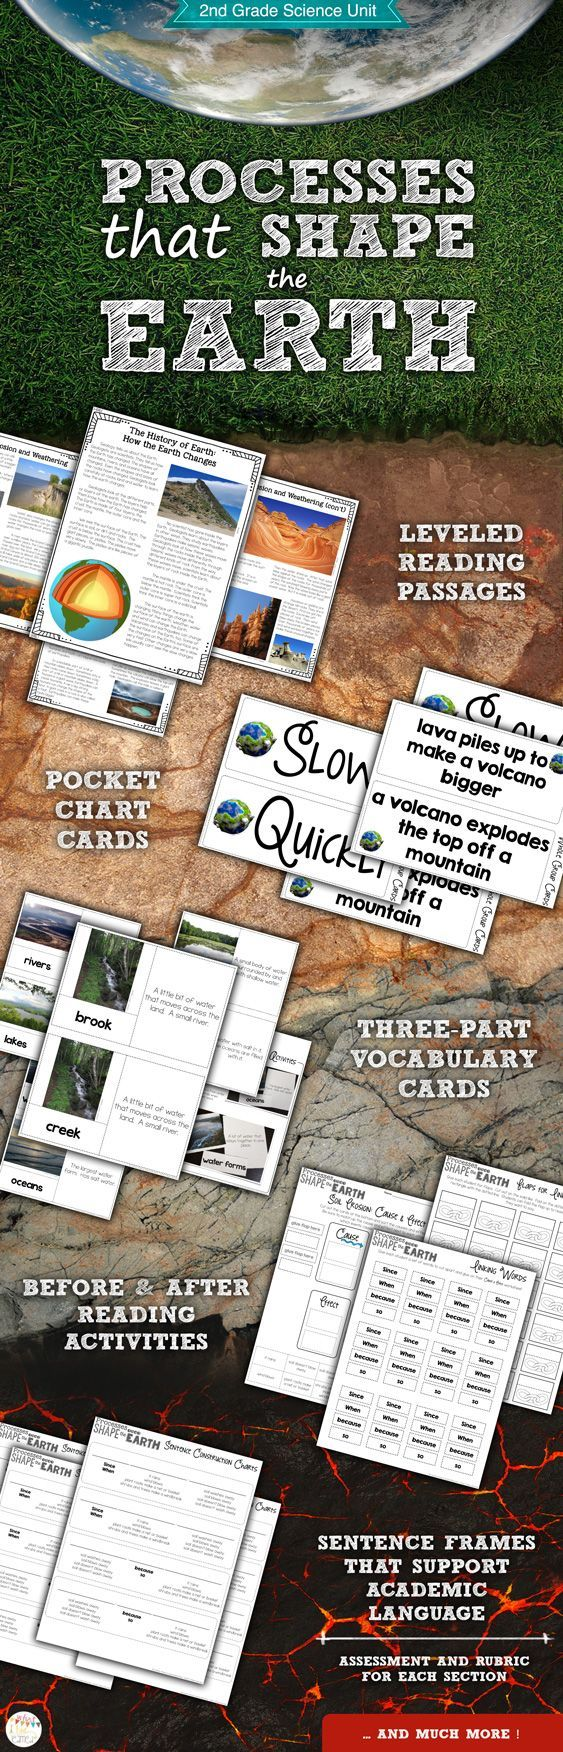 Processes that Shape the Earth is a second grade science unit that addresses the Next Generation Science Standards for Earth Science.  It is full of leveled reading passages, before and after reading activities, vocabulary cards, and ways for students to practice using academic language before and after reading.